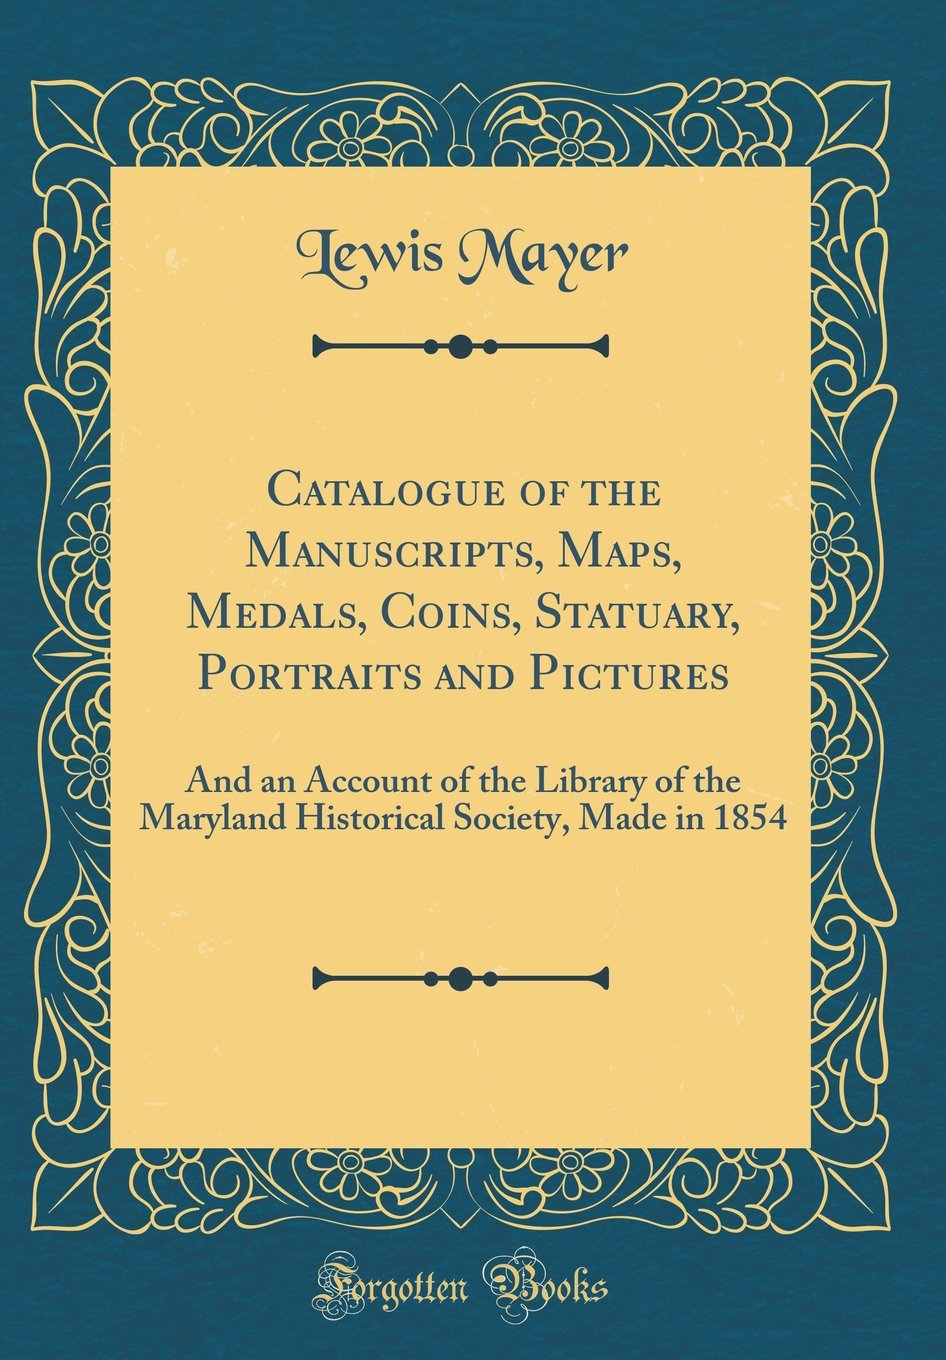 Catalogue of the Manuscripts, Maps, Medals, Coins, Statuary, Portraits and Pictures: And an Account of the Library of the Maryland Historical Society, Made in 1854 (Classic Reprint) PDF ePub fb2 book